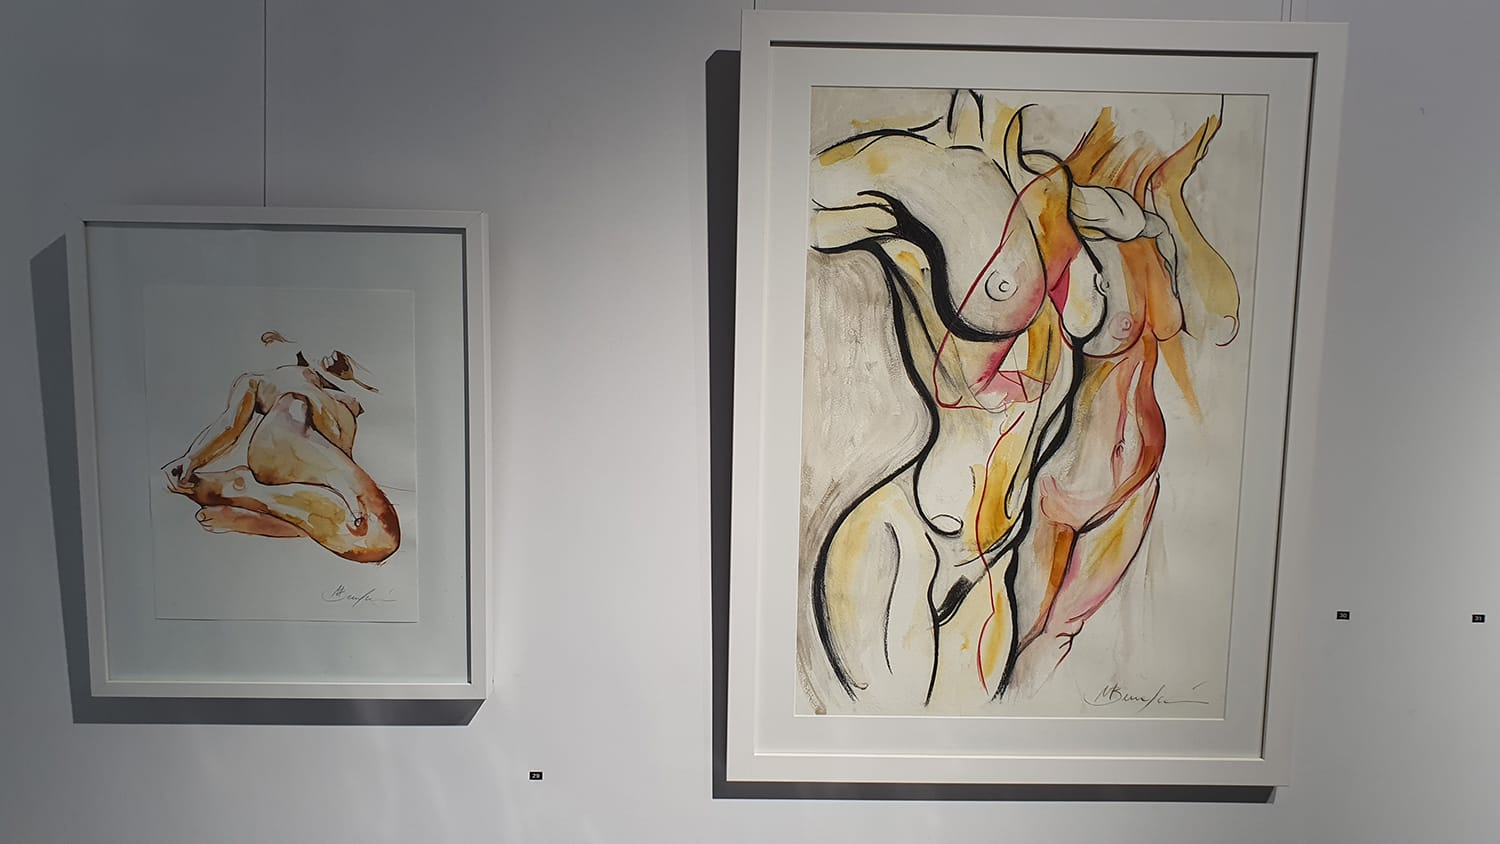 Peach Black Chippendale Gallery Life Drawing Club Exhibition November 2020 Sydney Art Out Live (20)